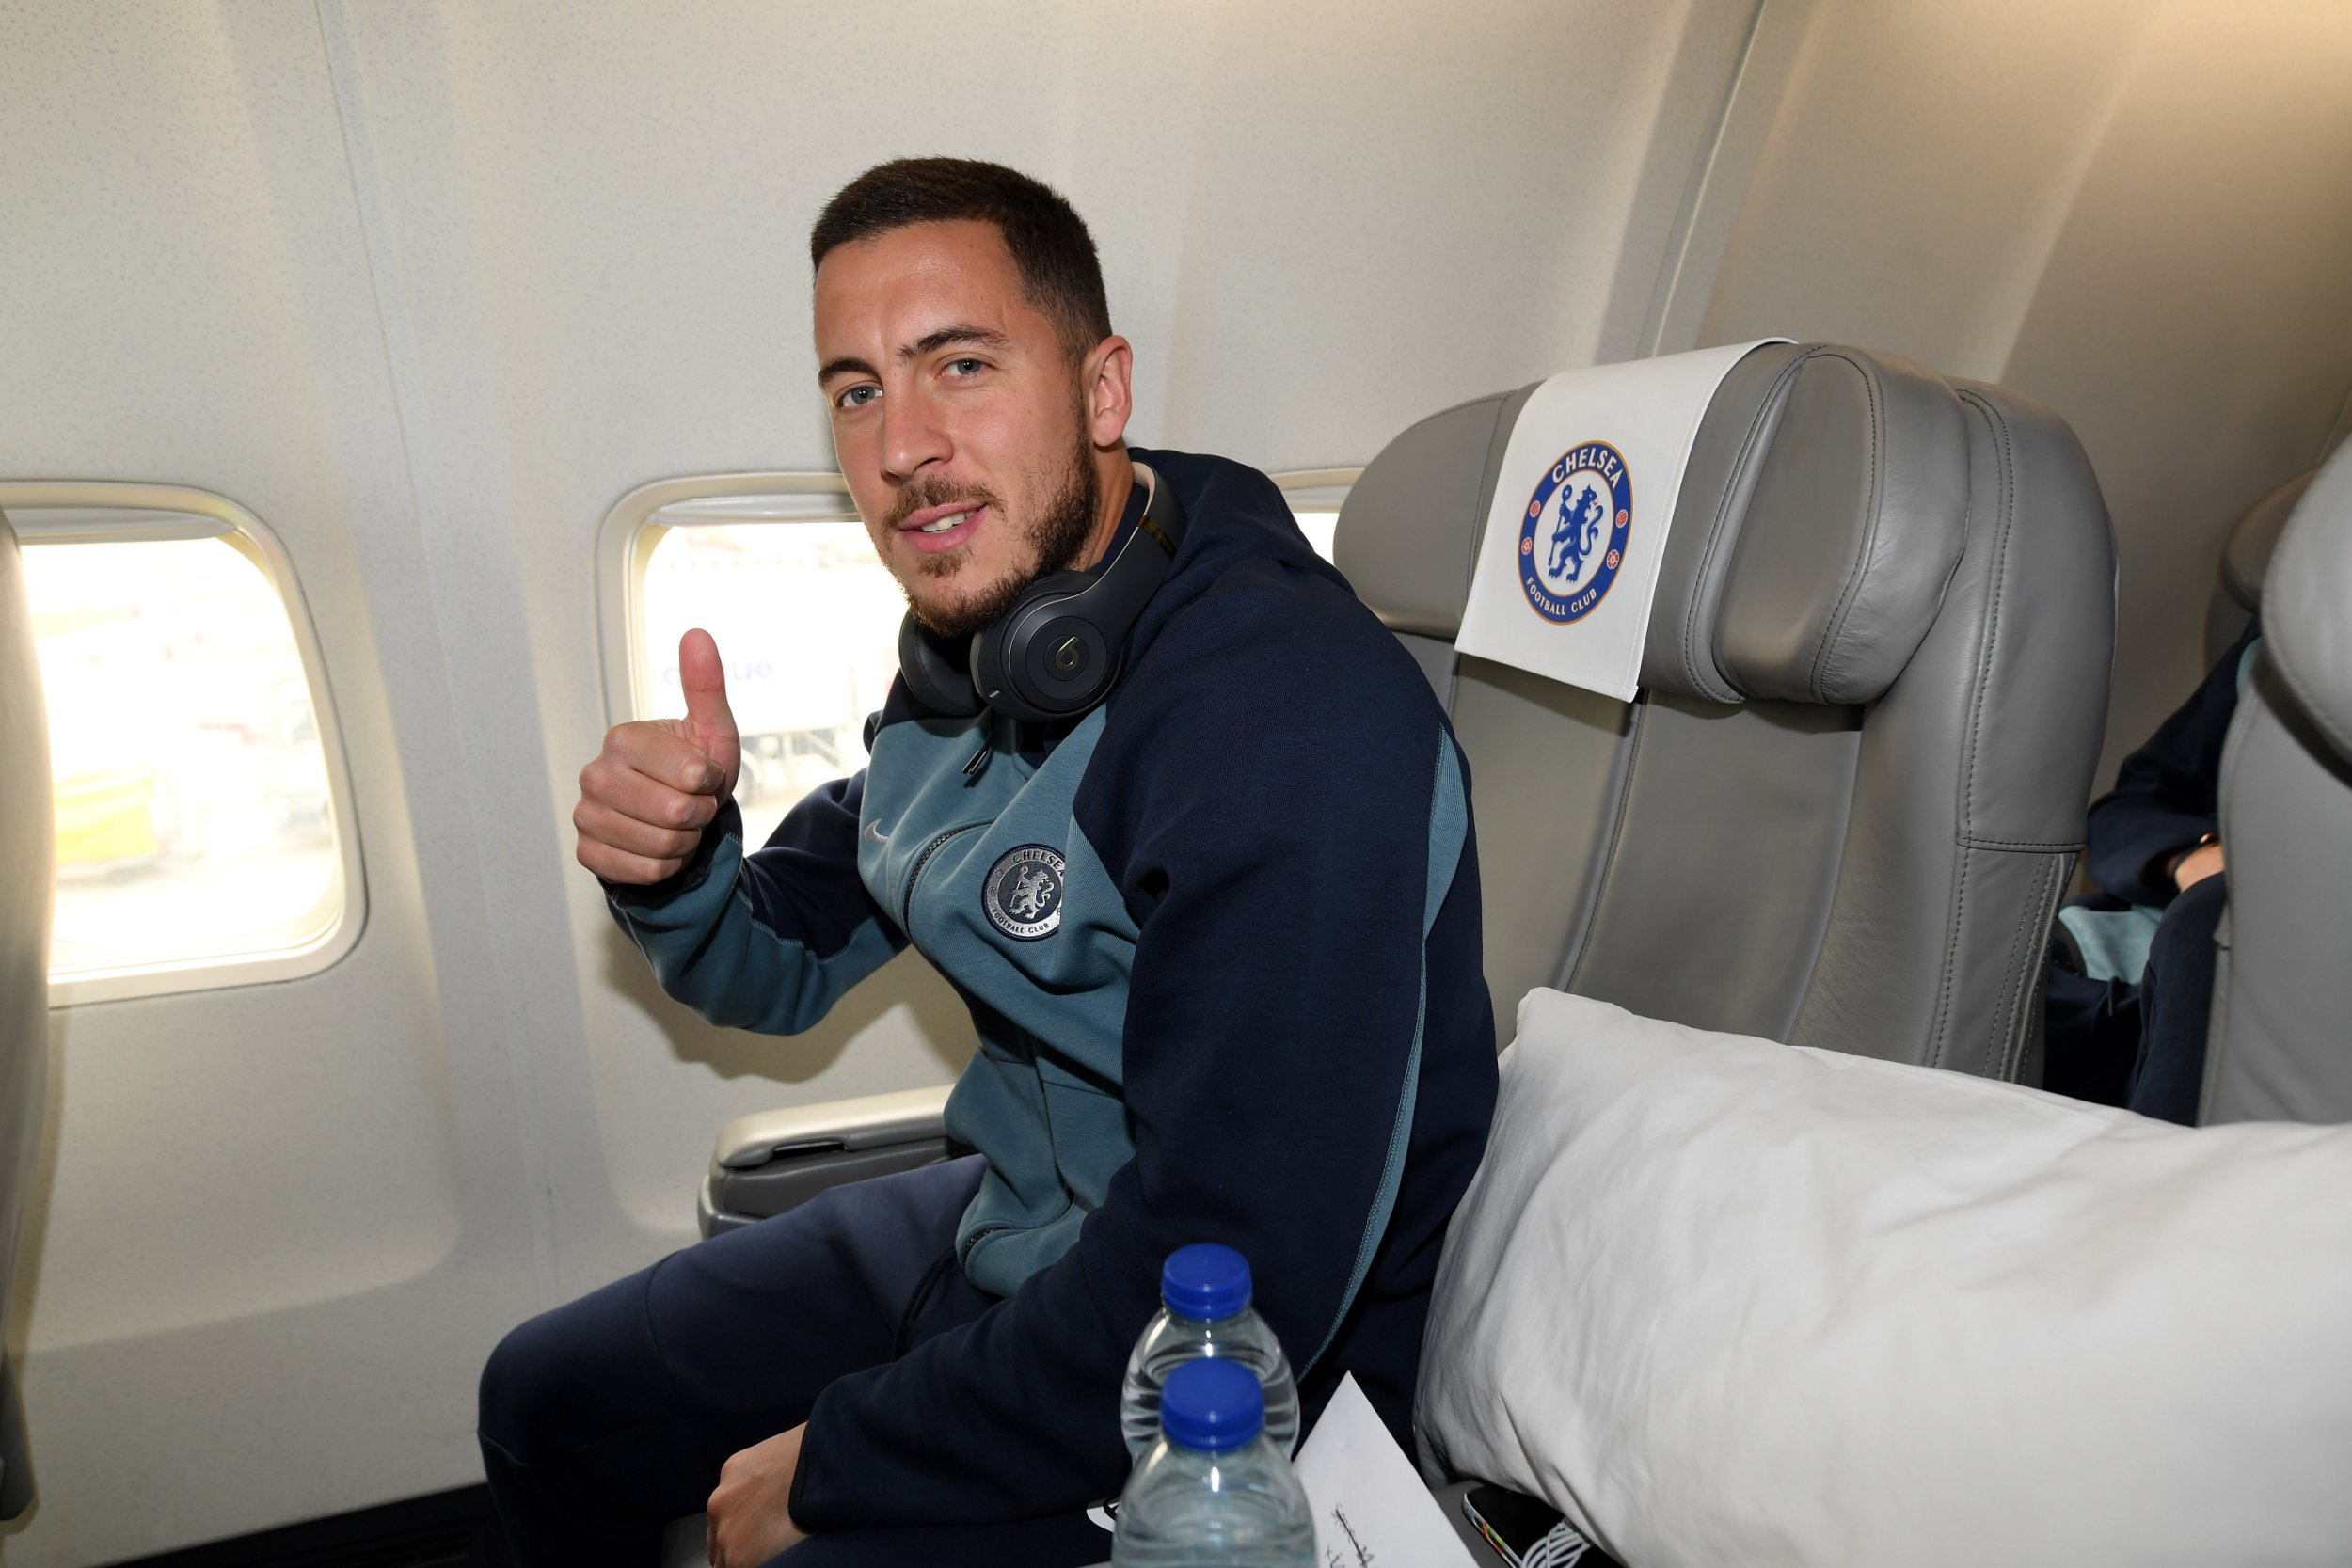 CRAWLEY, ENGLAND - MAY 01: Eden Hazard of Chelsea as the team board the plane to Frankfurt at Gatwick Airport on May 1, 2019 in Gatwick, England. (Photo by Darren Walsh/Chelsea FC via Getty Images)